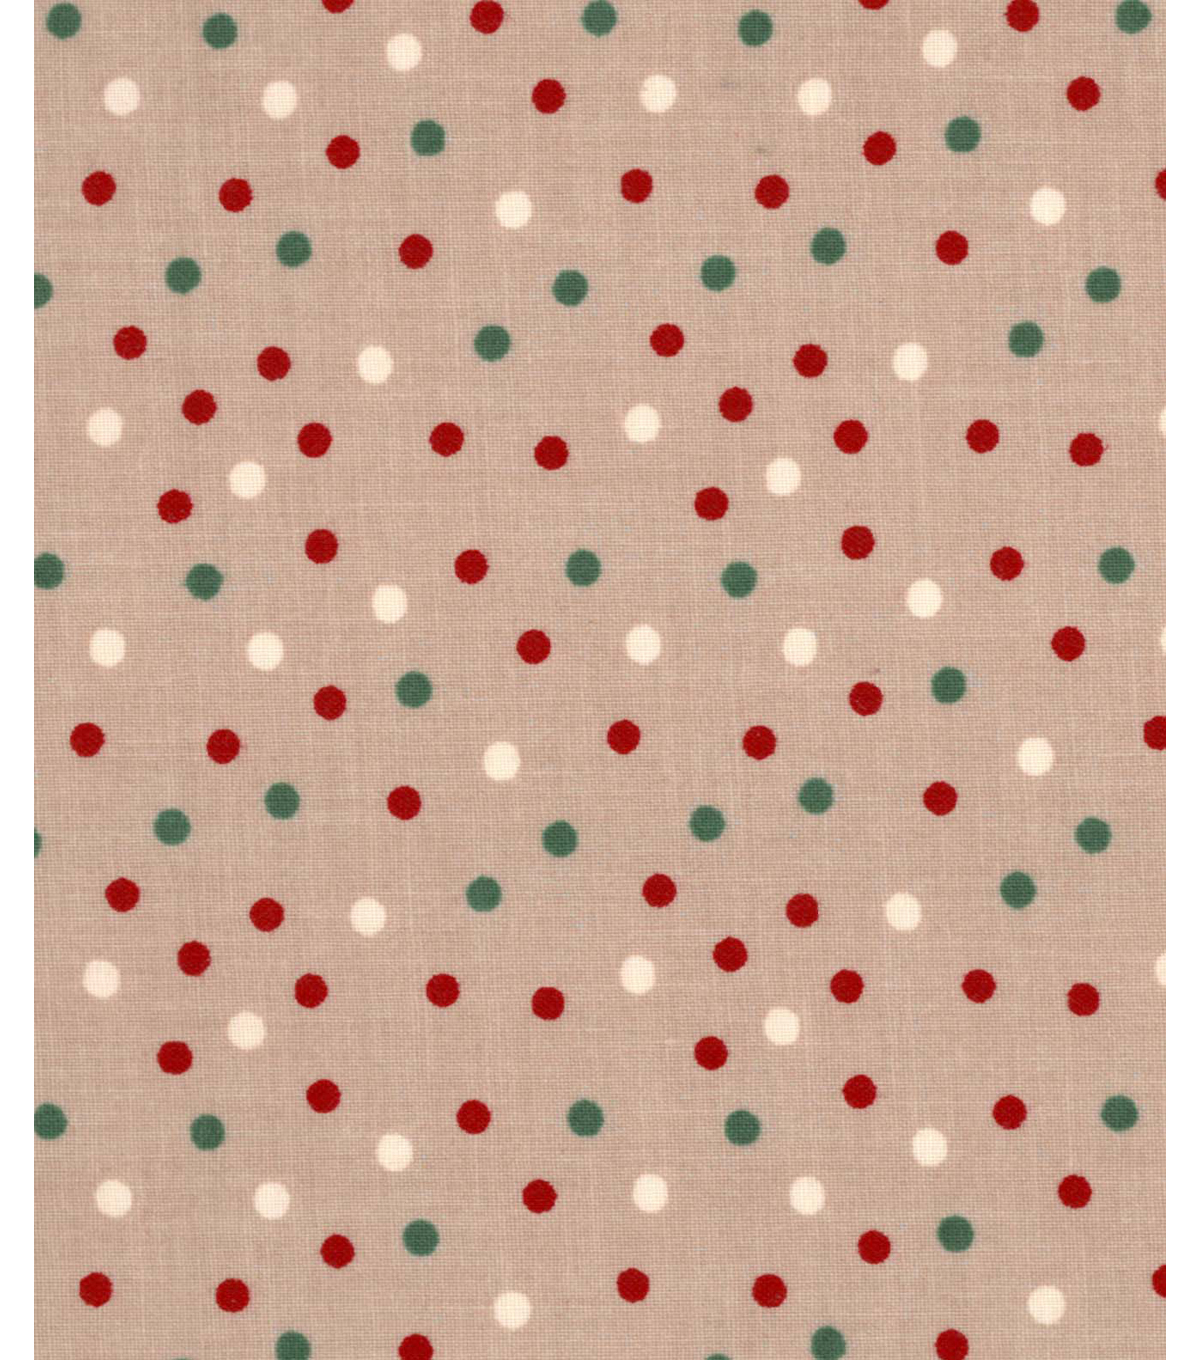 Christmas Cotton Fabric 43''-Holiday Dots on Beige